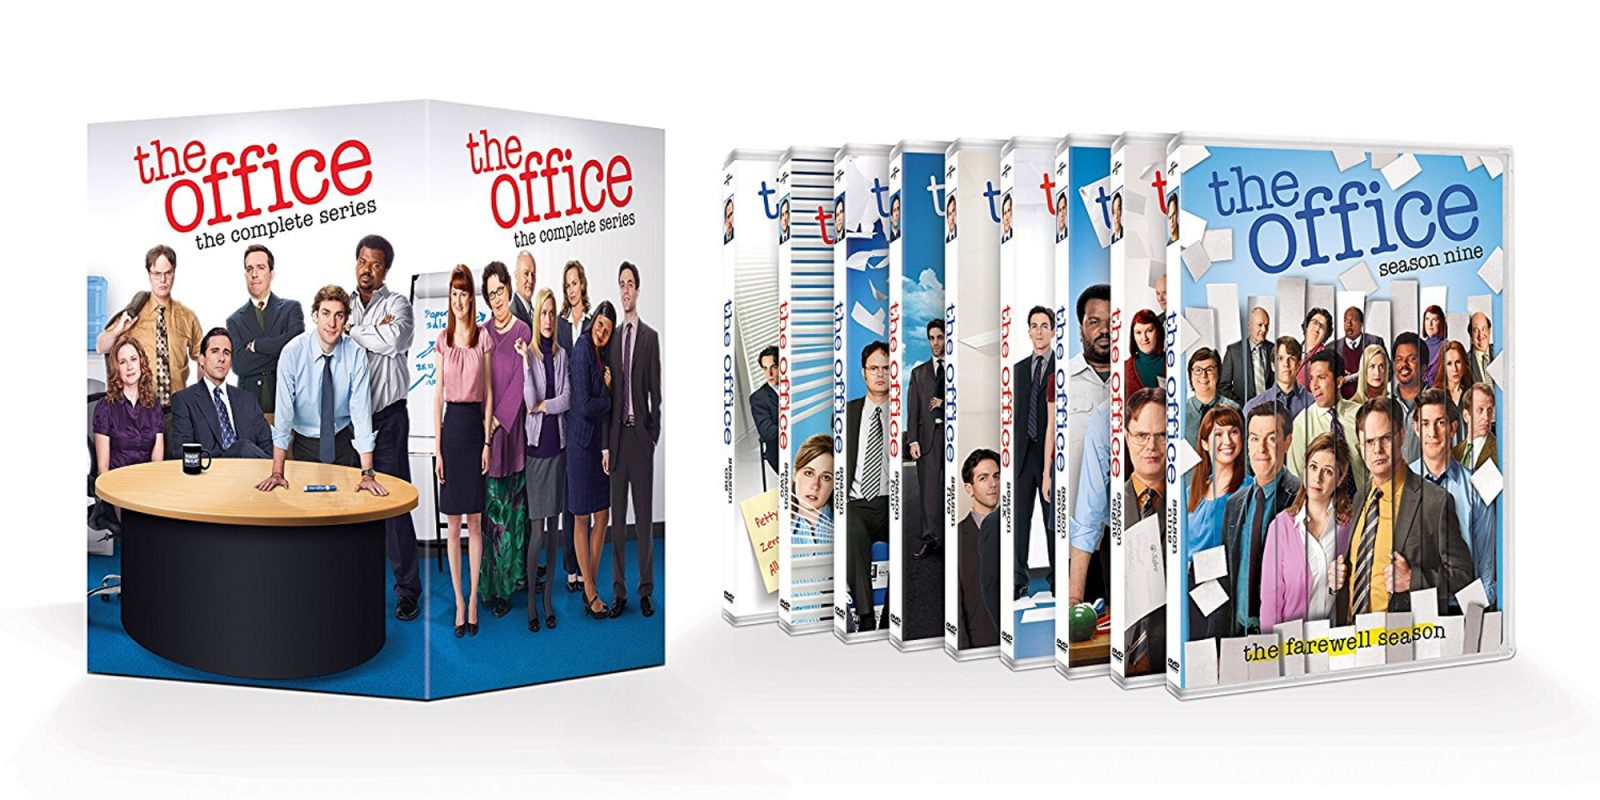 Bring Home The Office 38 Disc Dvd Box Set For 36 50 All Time Low